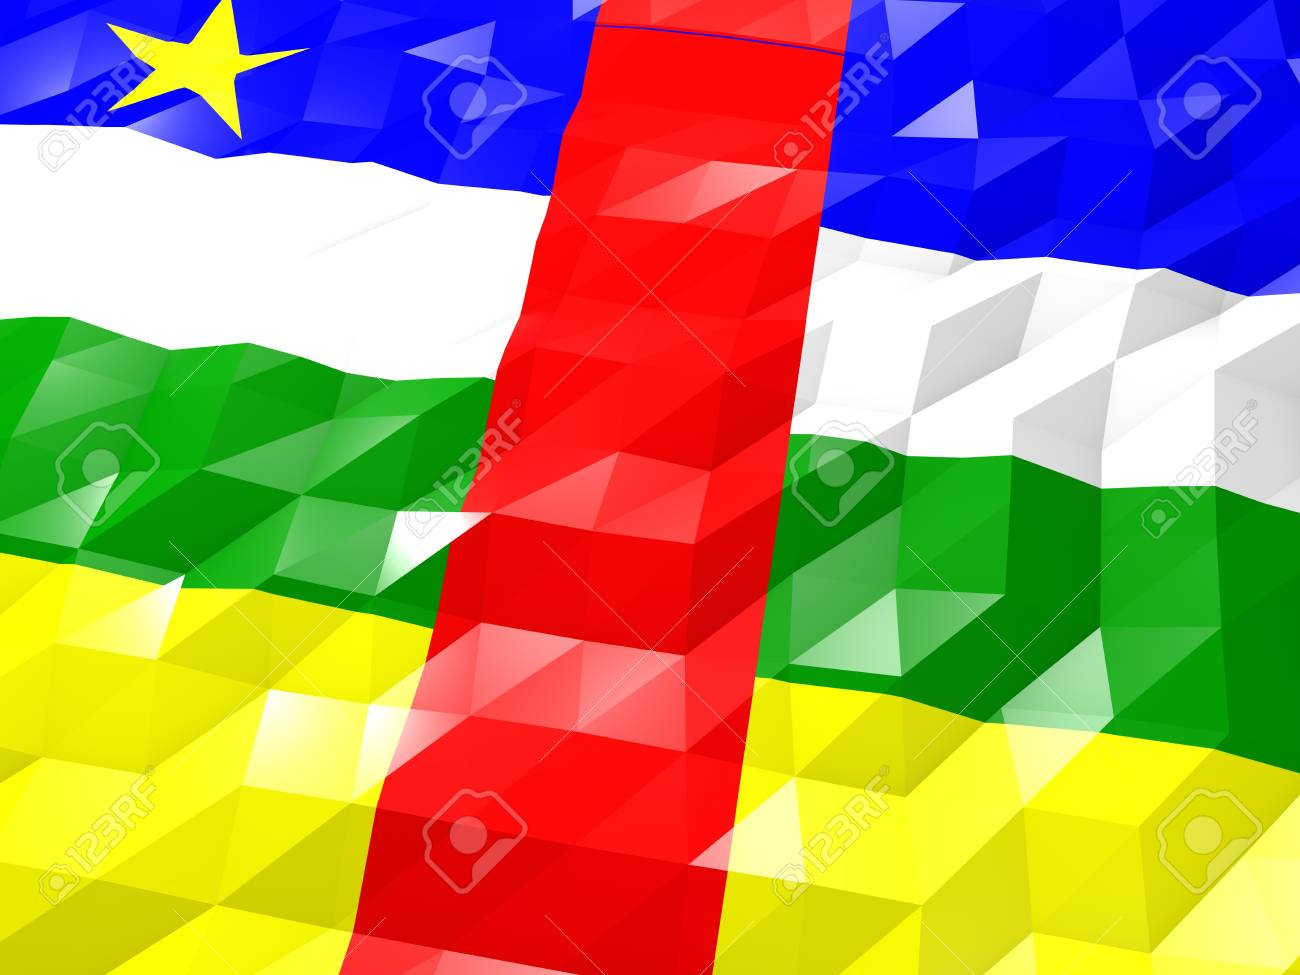 Flag Of Central African Republic 3D Wallpaper Illustration 1300x975